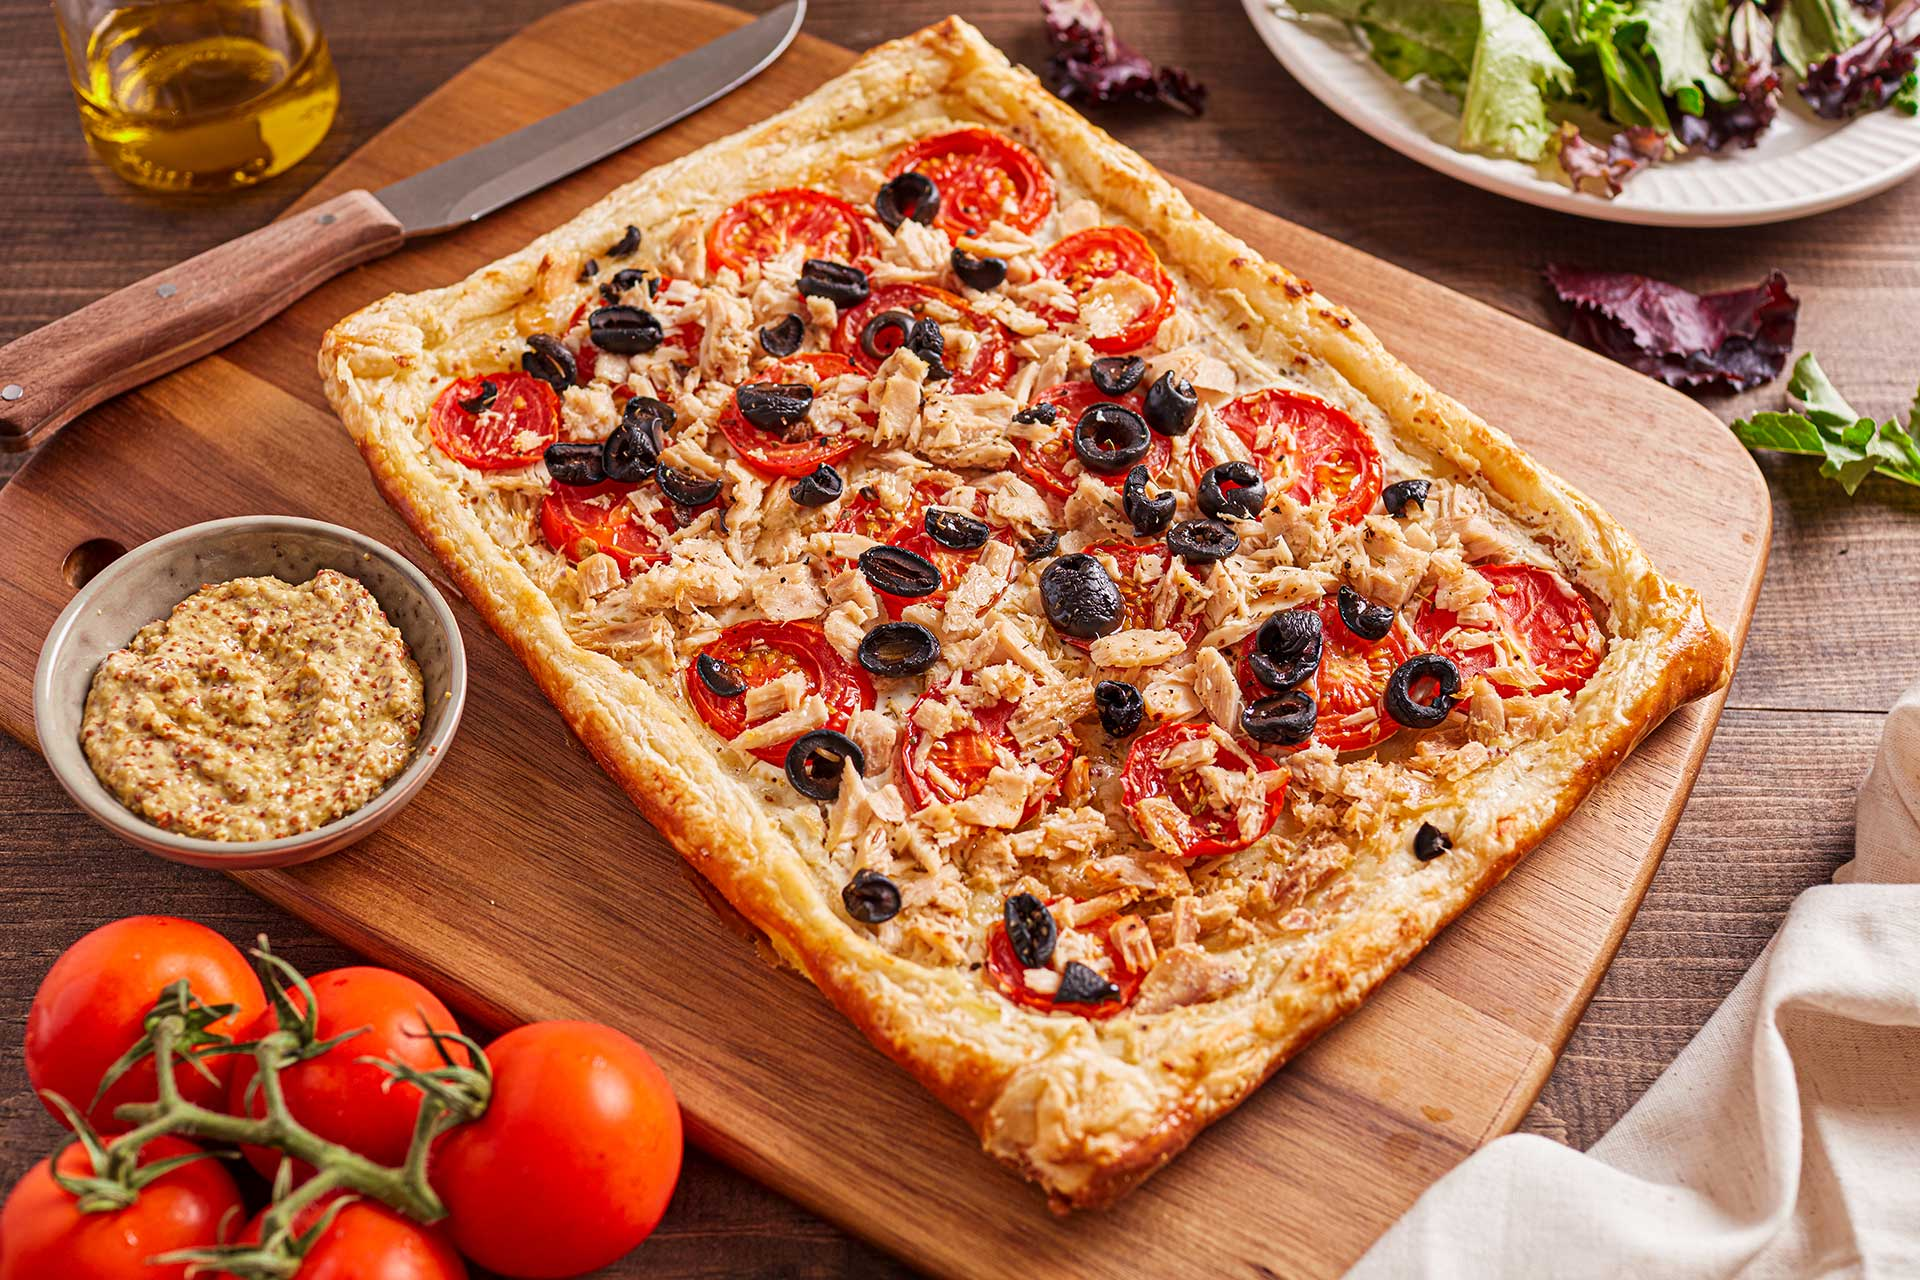 Puff Pastry with Tuna, Tomatoes and Olives (France)